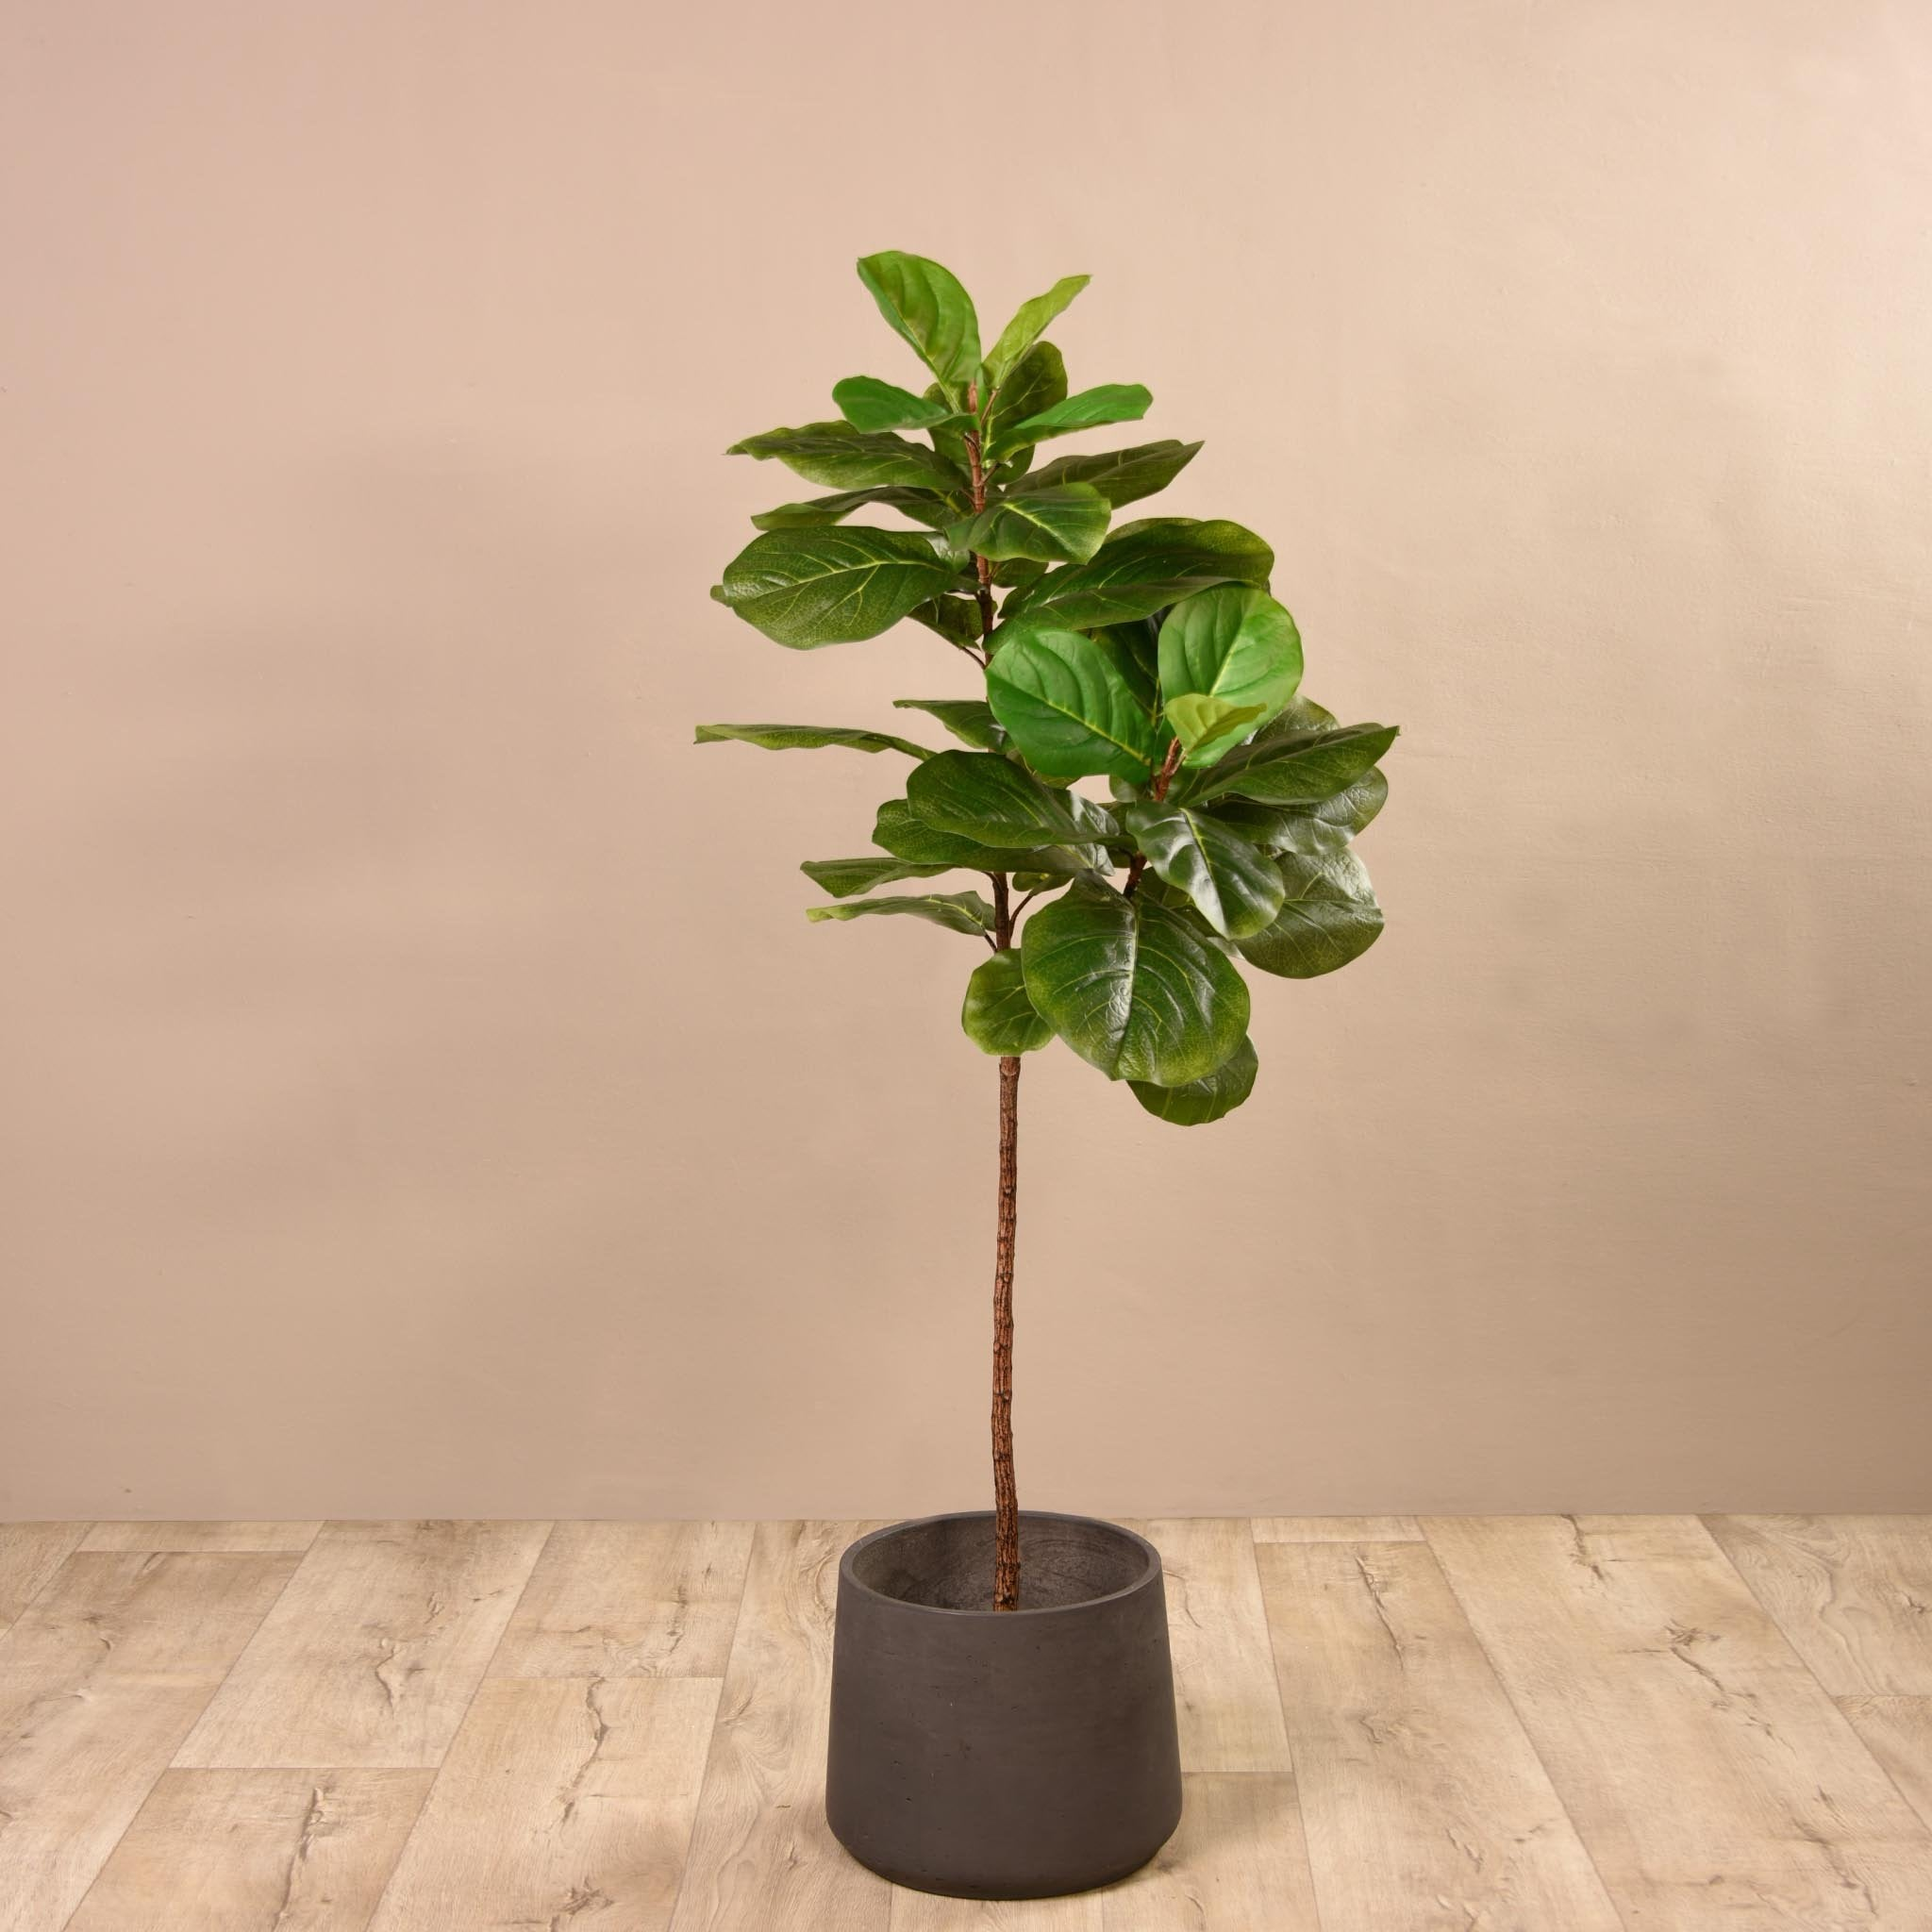 bloomr-usa Trees Large Fiddle Leaf Tree artificial flowers artificial trees artificial plants faux florals